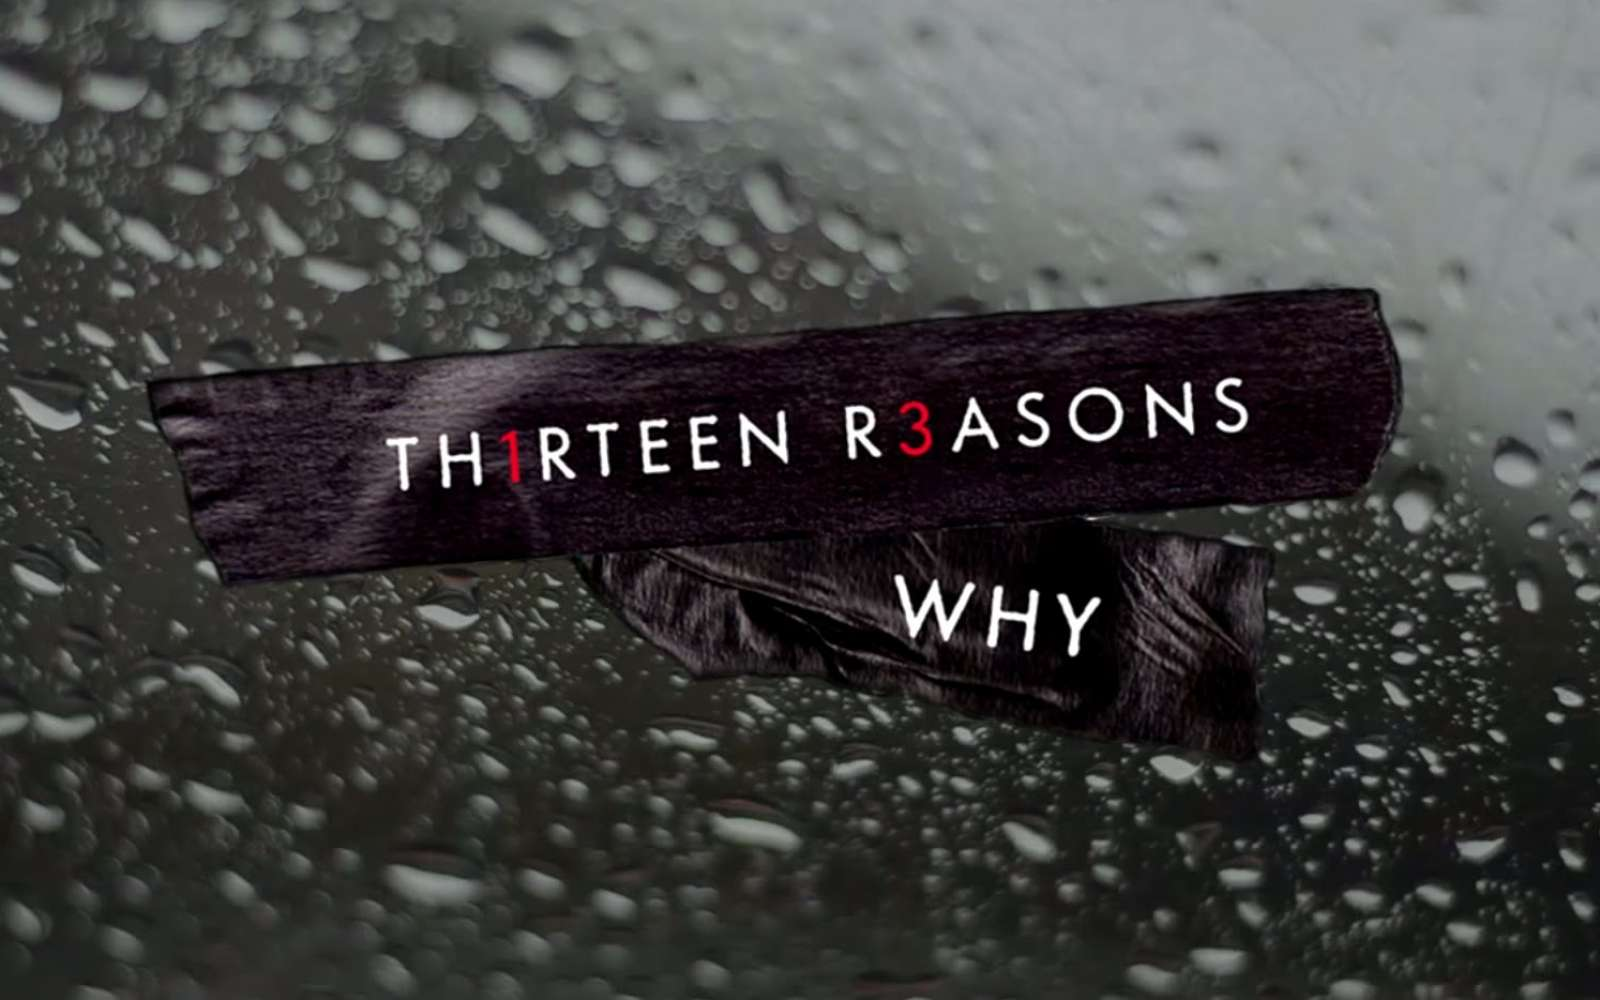 13 Quotes From The Chilling Book That Inspired The Highly Anticipated Netflix Series 'Thirteen Reasons Why'